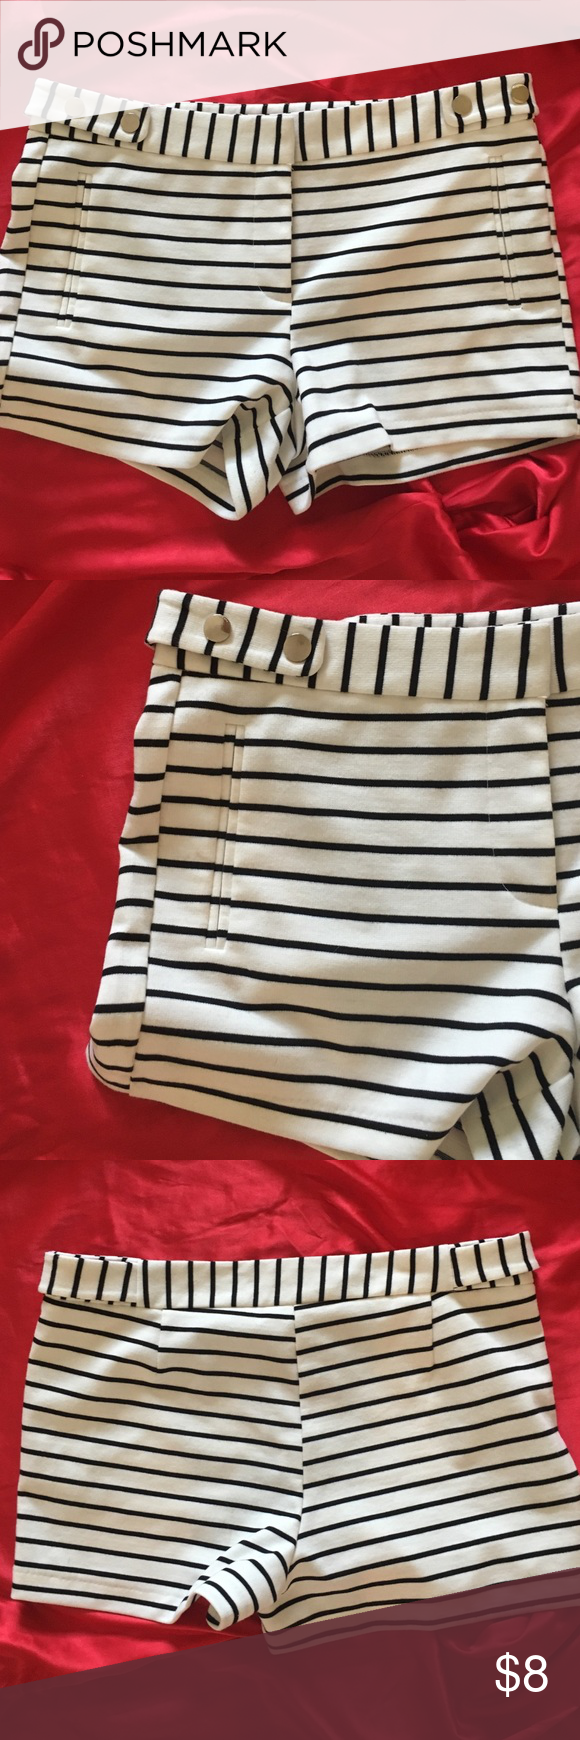 B&W Striped Shorts Adorable black and white striped shorts. No flaws! Bundle for great deals  Shorts